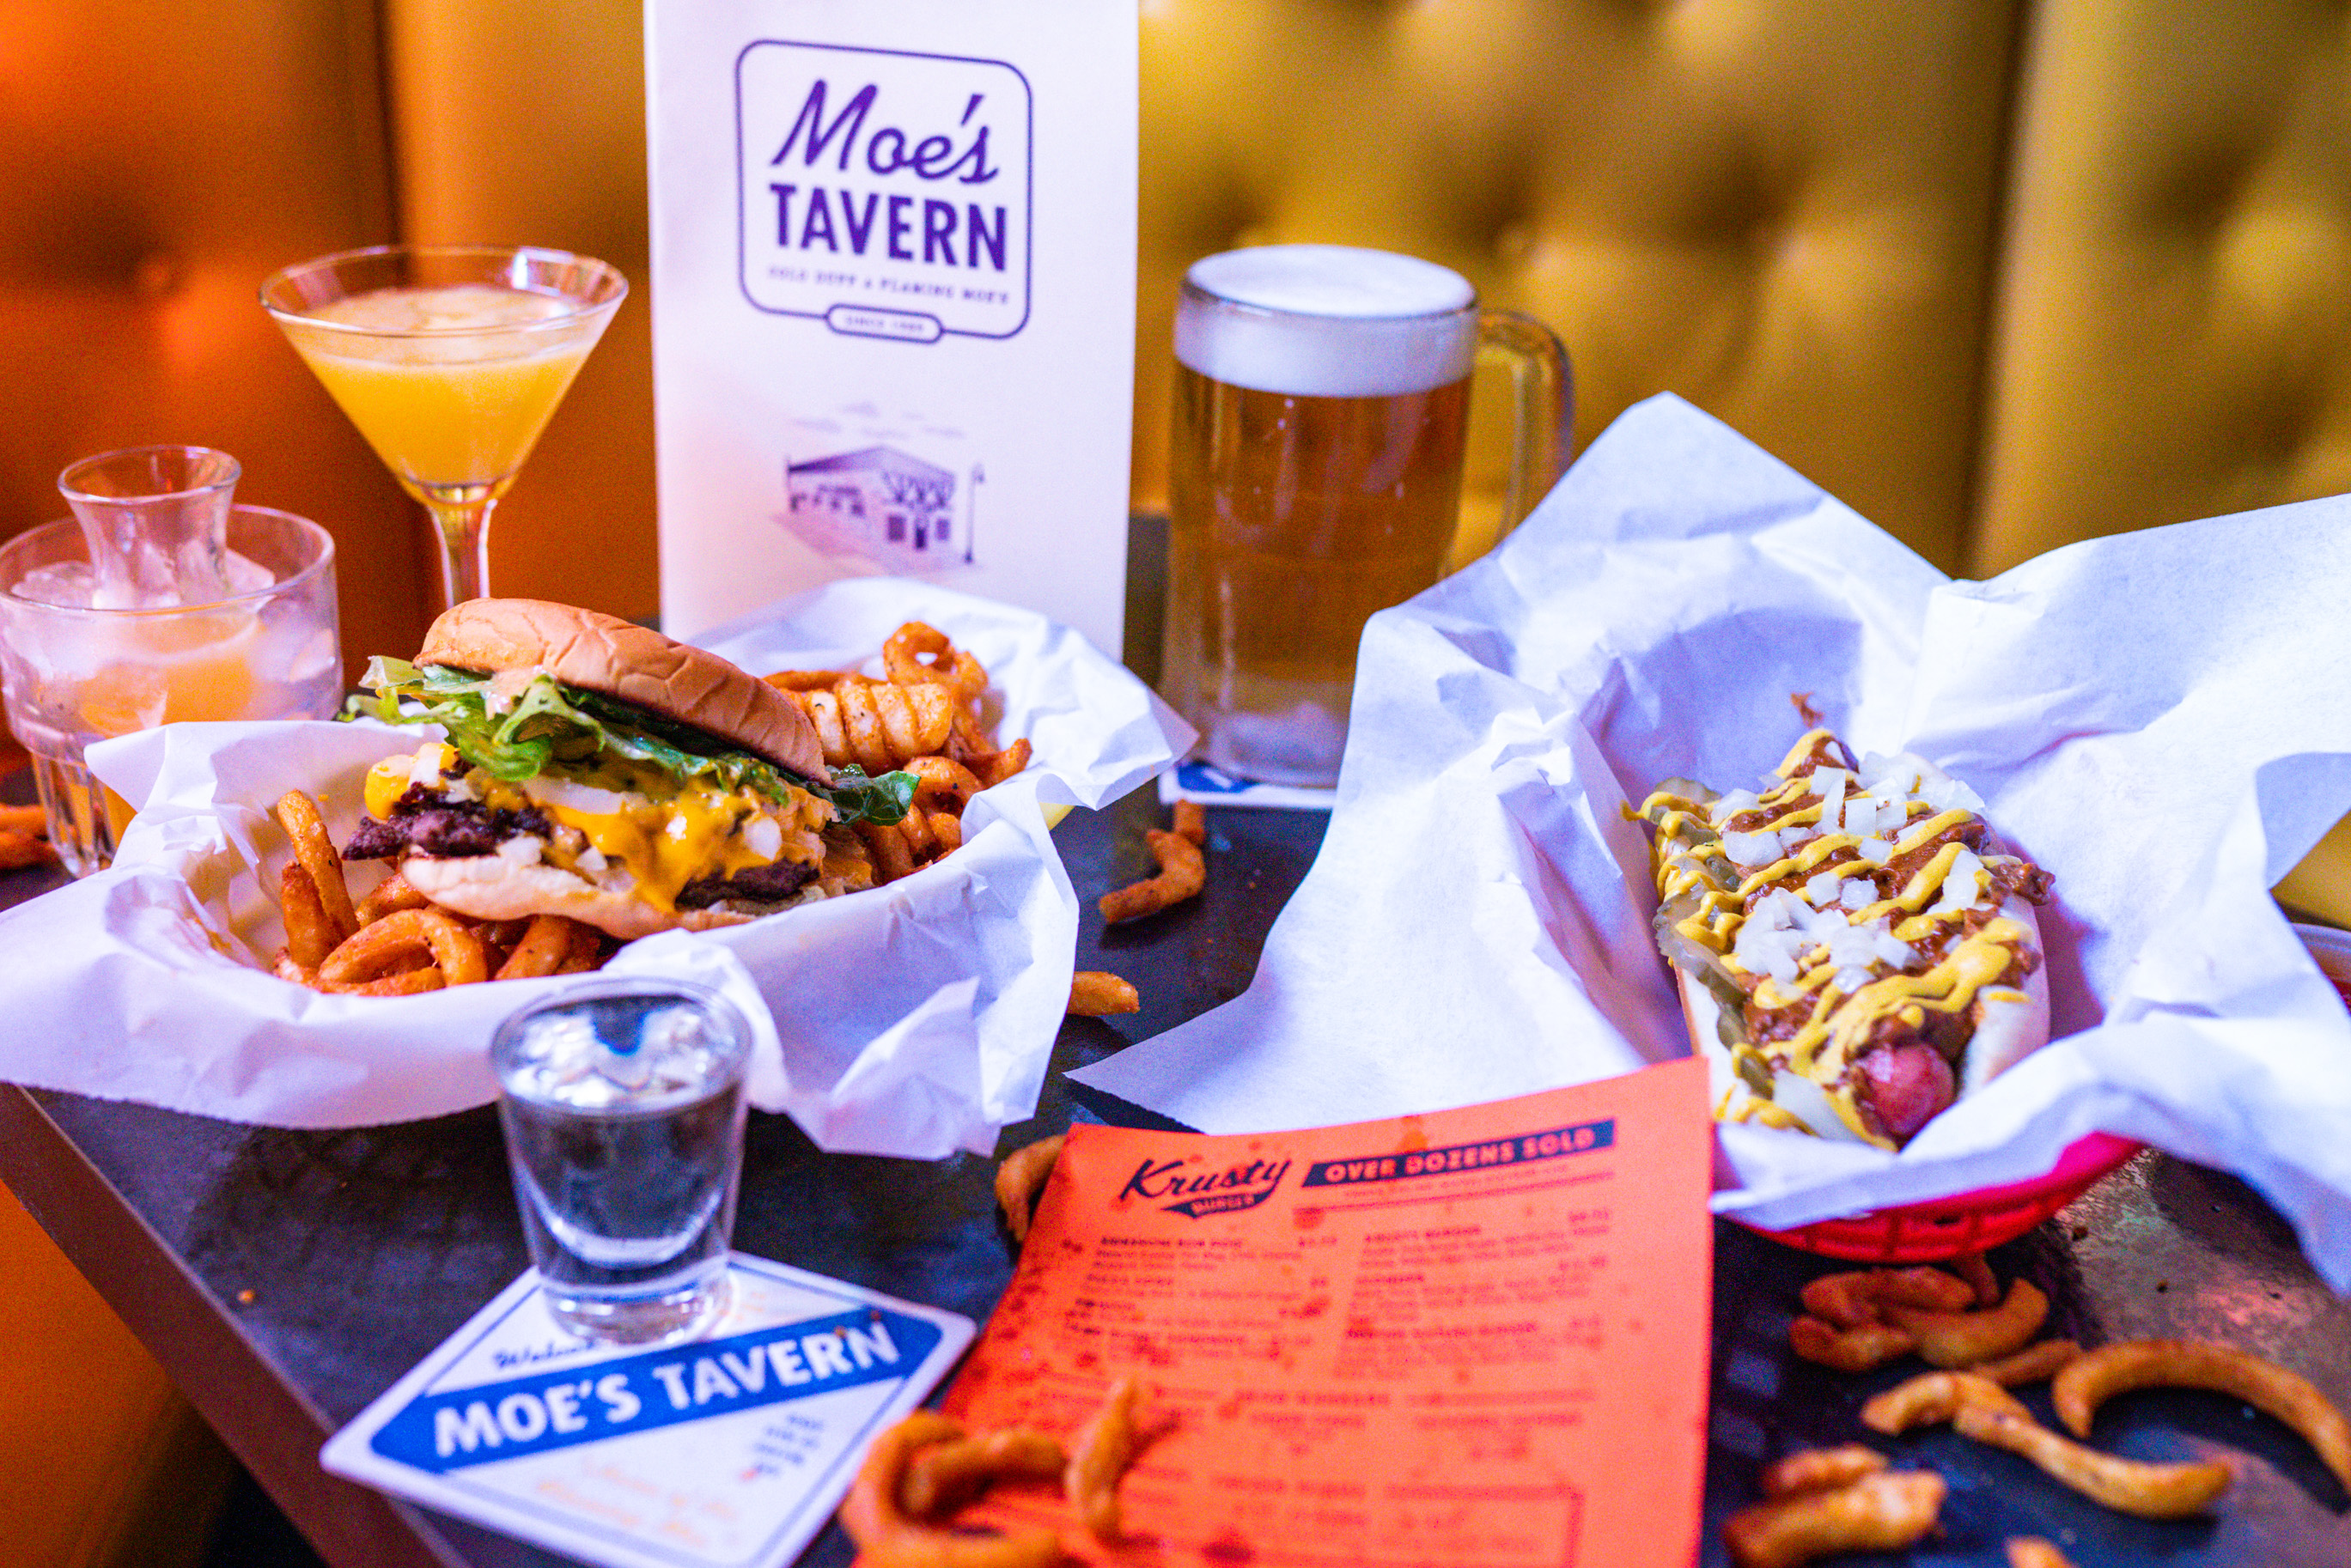 A table with a basket of burgers and fries, and another basket of a hot dog with cheese and sauce, with cocktails and menus.